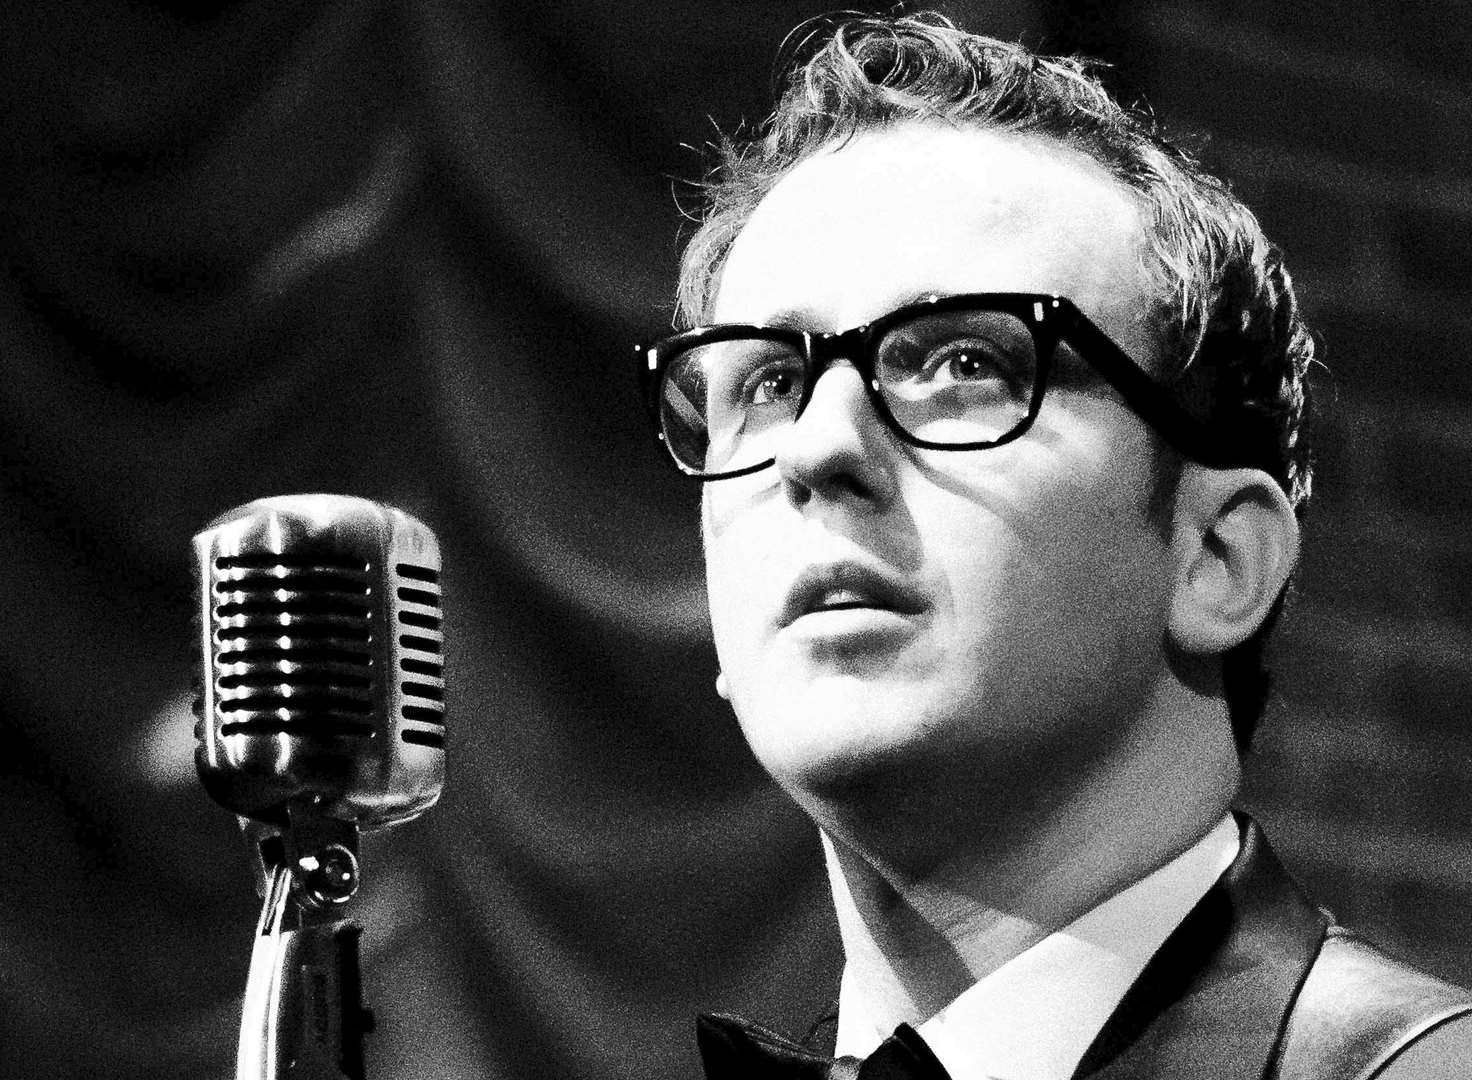 Review: Buddy - The Buddy Holly Story